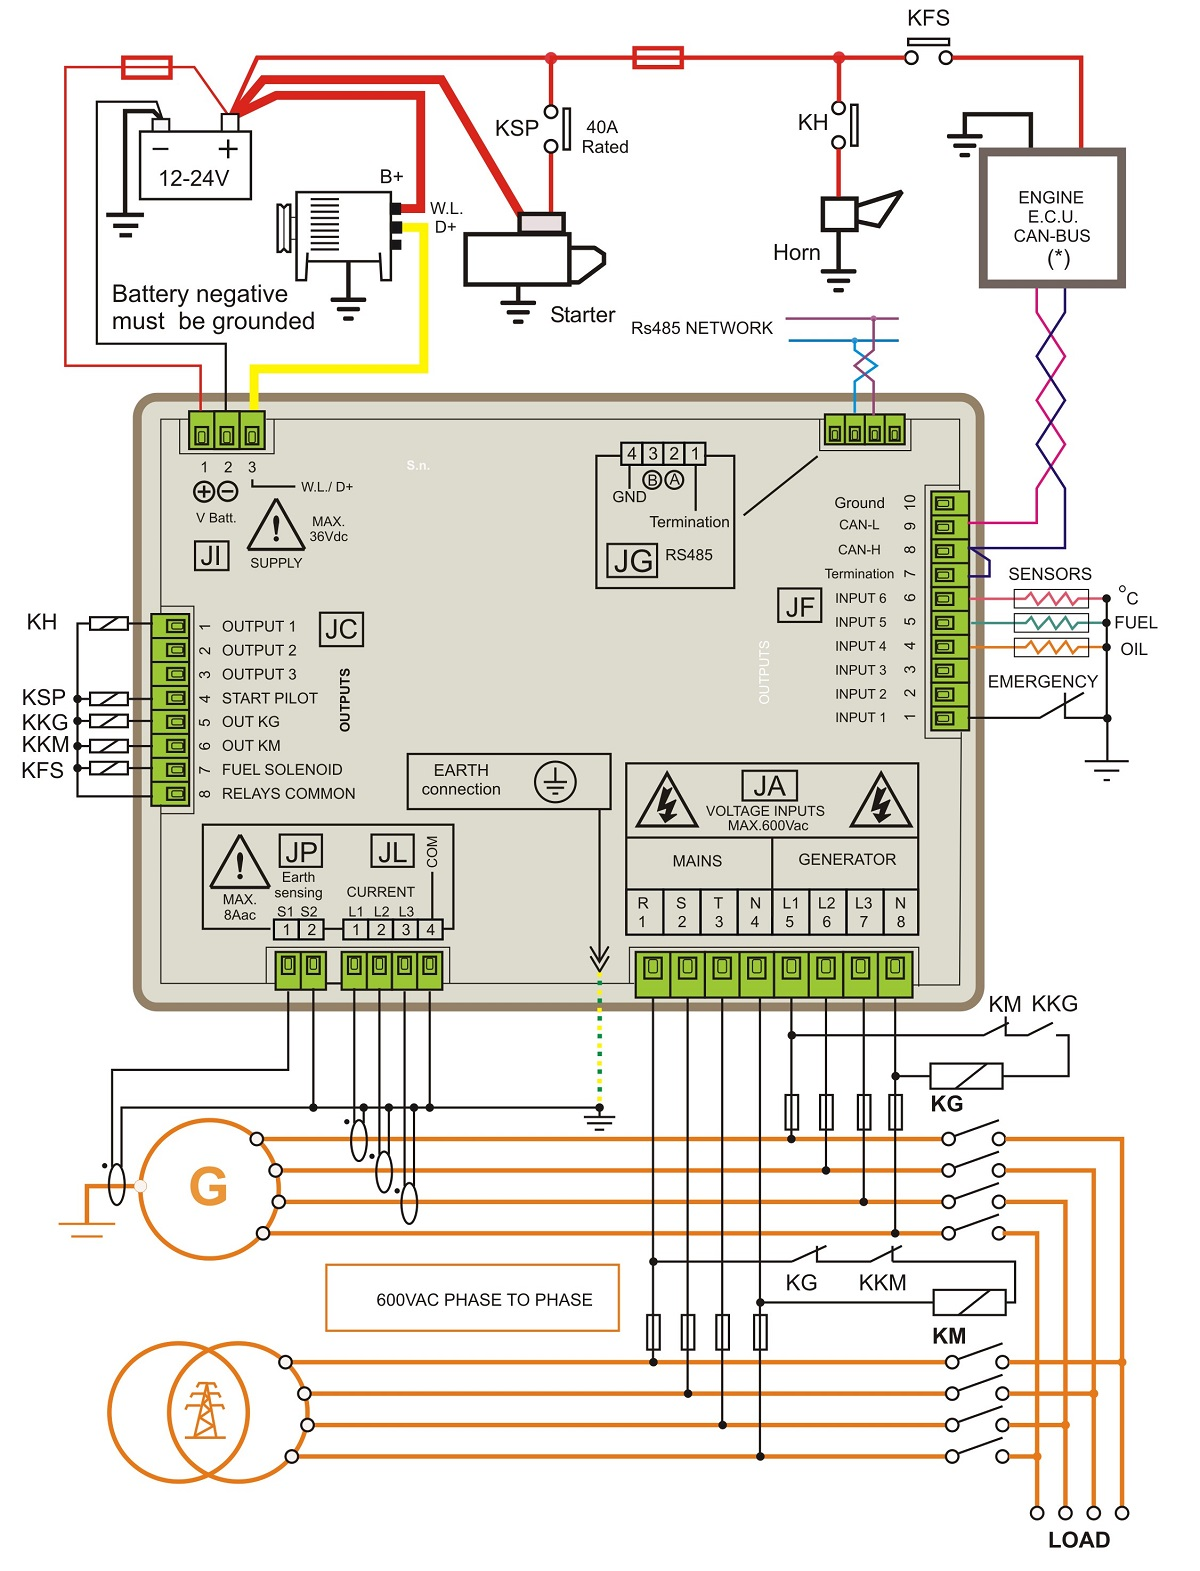 BeK3 Automatic Mains Failure Wiring Diagram ats control panel wiring diagram mk ats panel \u2022 wiring diagrams control panel electrical wiring basics at readyjetset.co